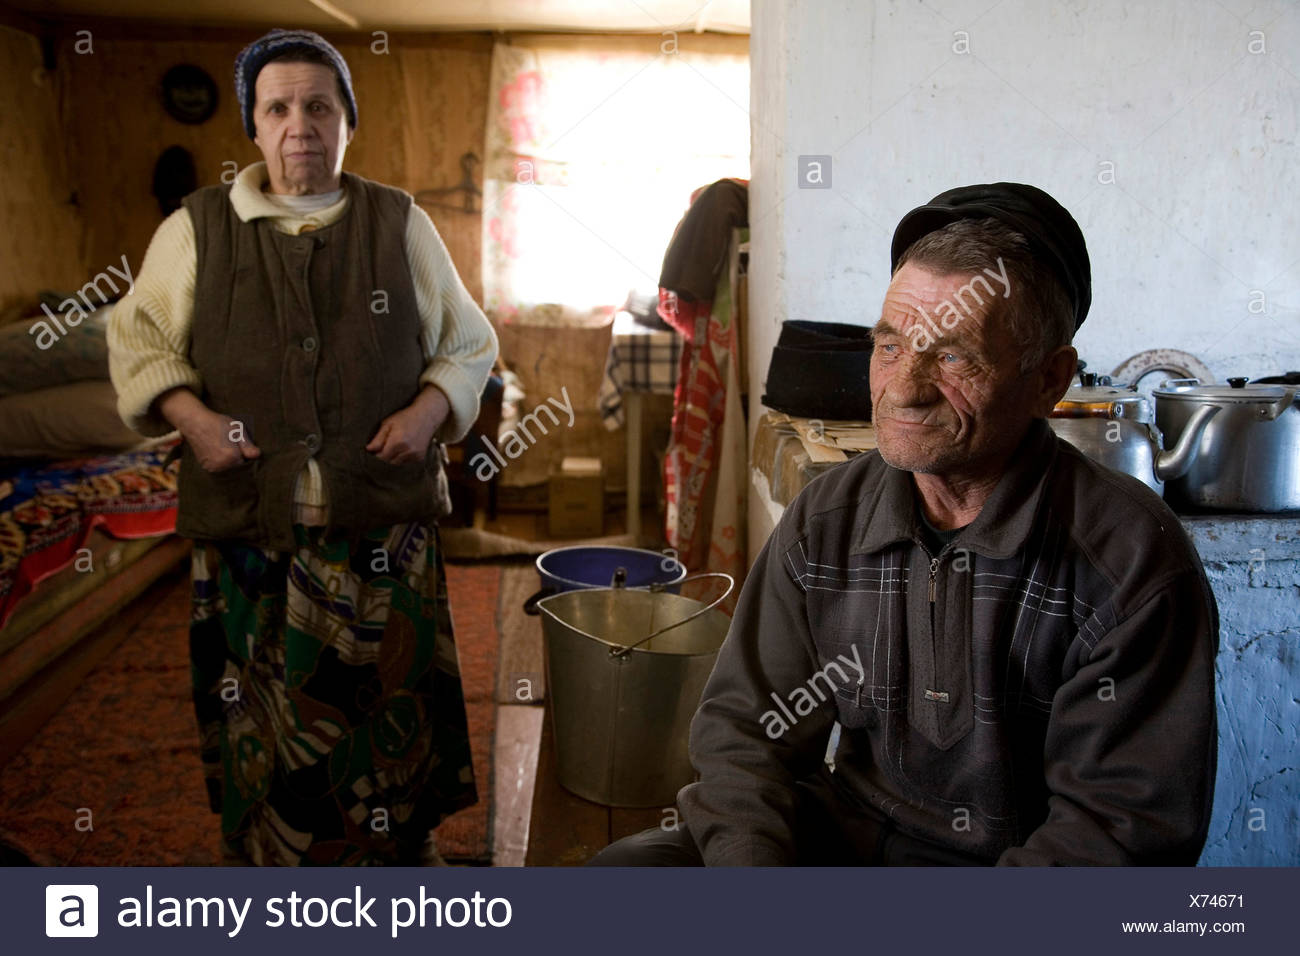 Peasant couple at their home in Karelia, Russia Stock Photo